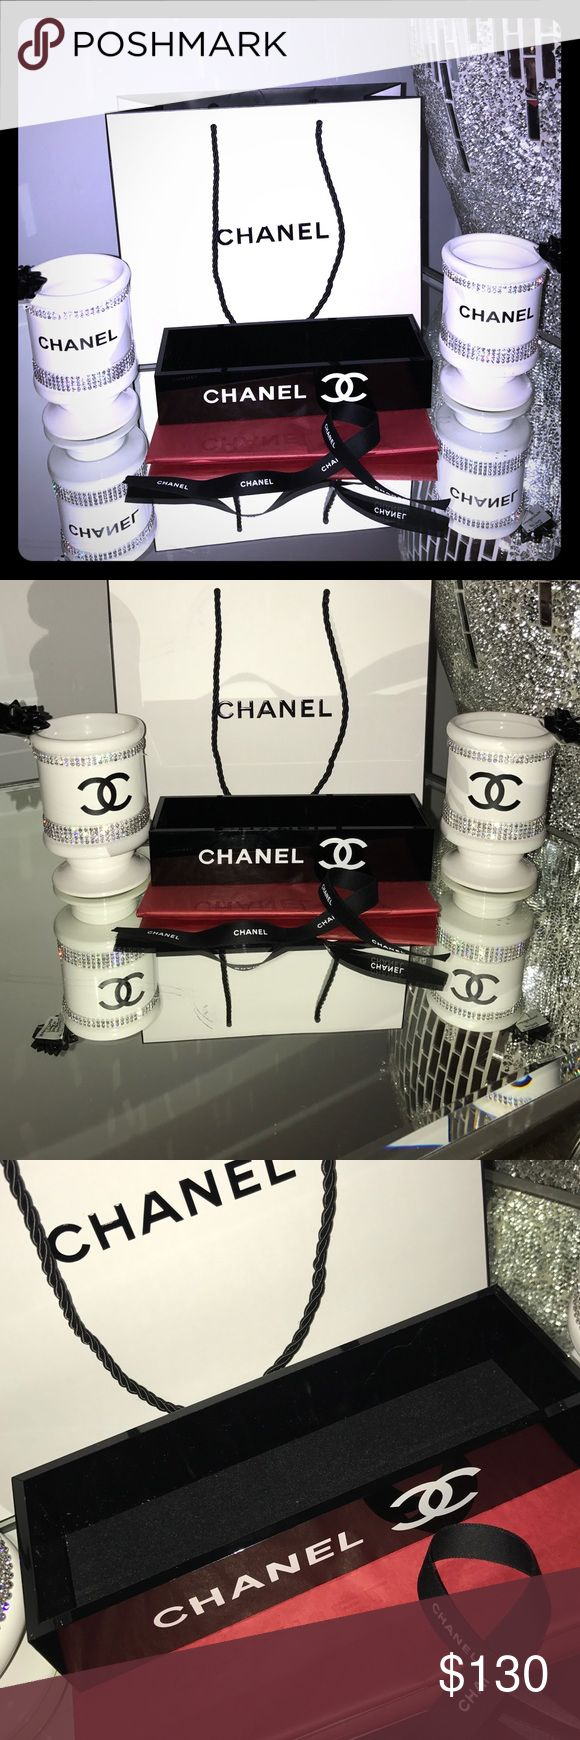 Chanel vanity set Chanel vanity set. Two-sided White porcelain and rhinestone brush holders Black acrylic removable lipstick Holder you could use it for your jewelry or cosmetics  A gorgeous gift set Chanel gift wrapping included  brush holders hole 15 to 20 brushes and each one  my last one CHANEL Makeup Brushes & Tools